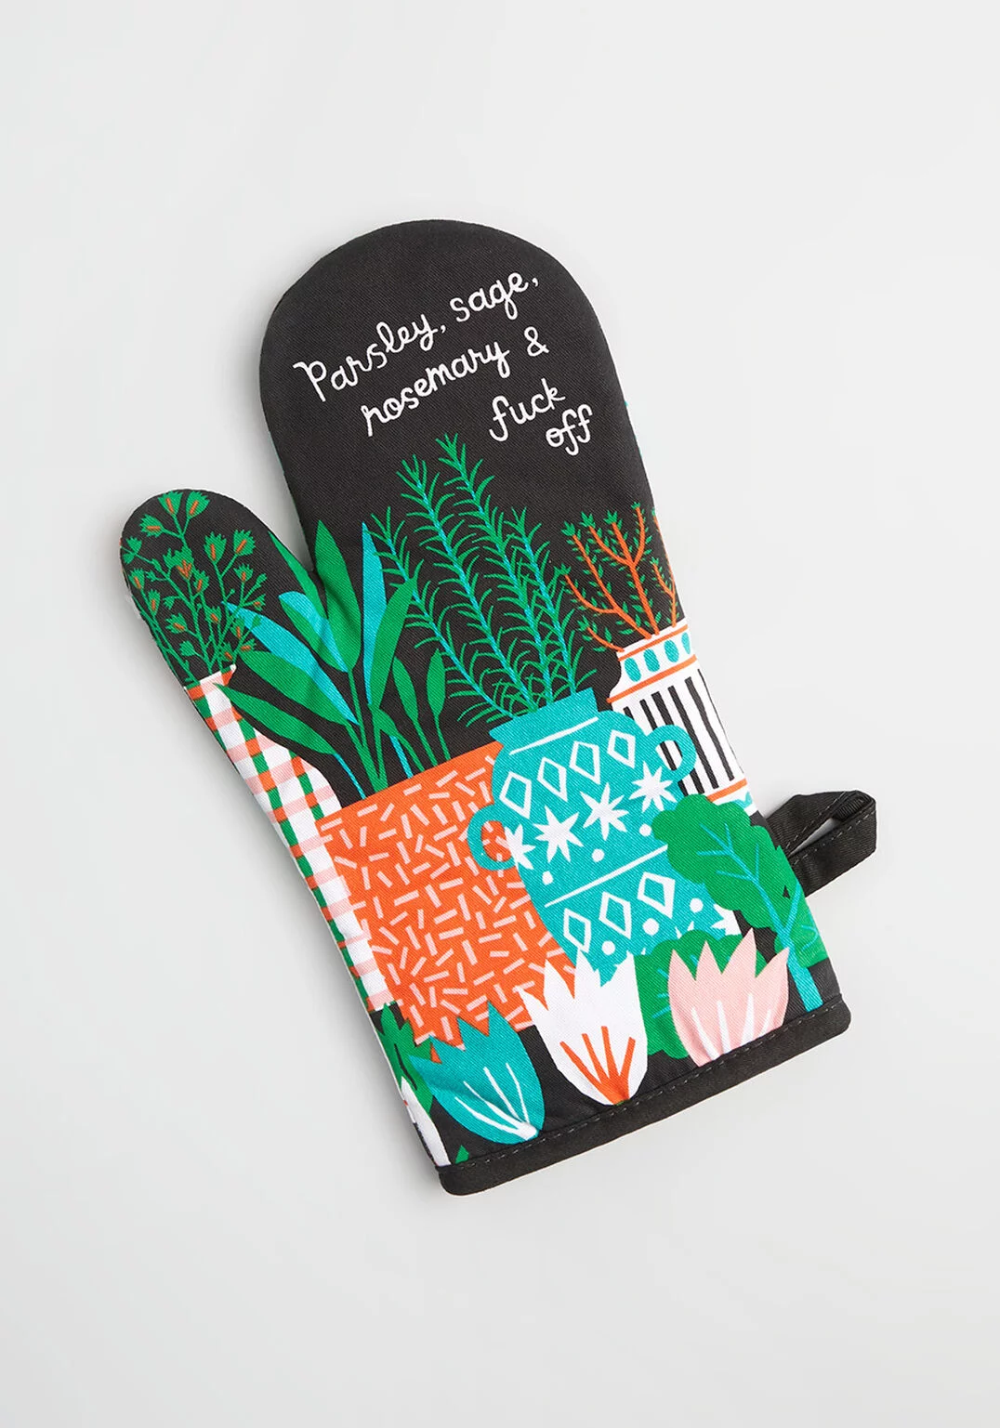 parsley sage rosemary oven mitt in 2020 oven mitts cute kitchen vintage inspired room pinterest